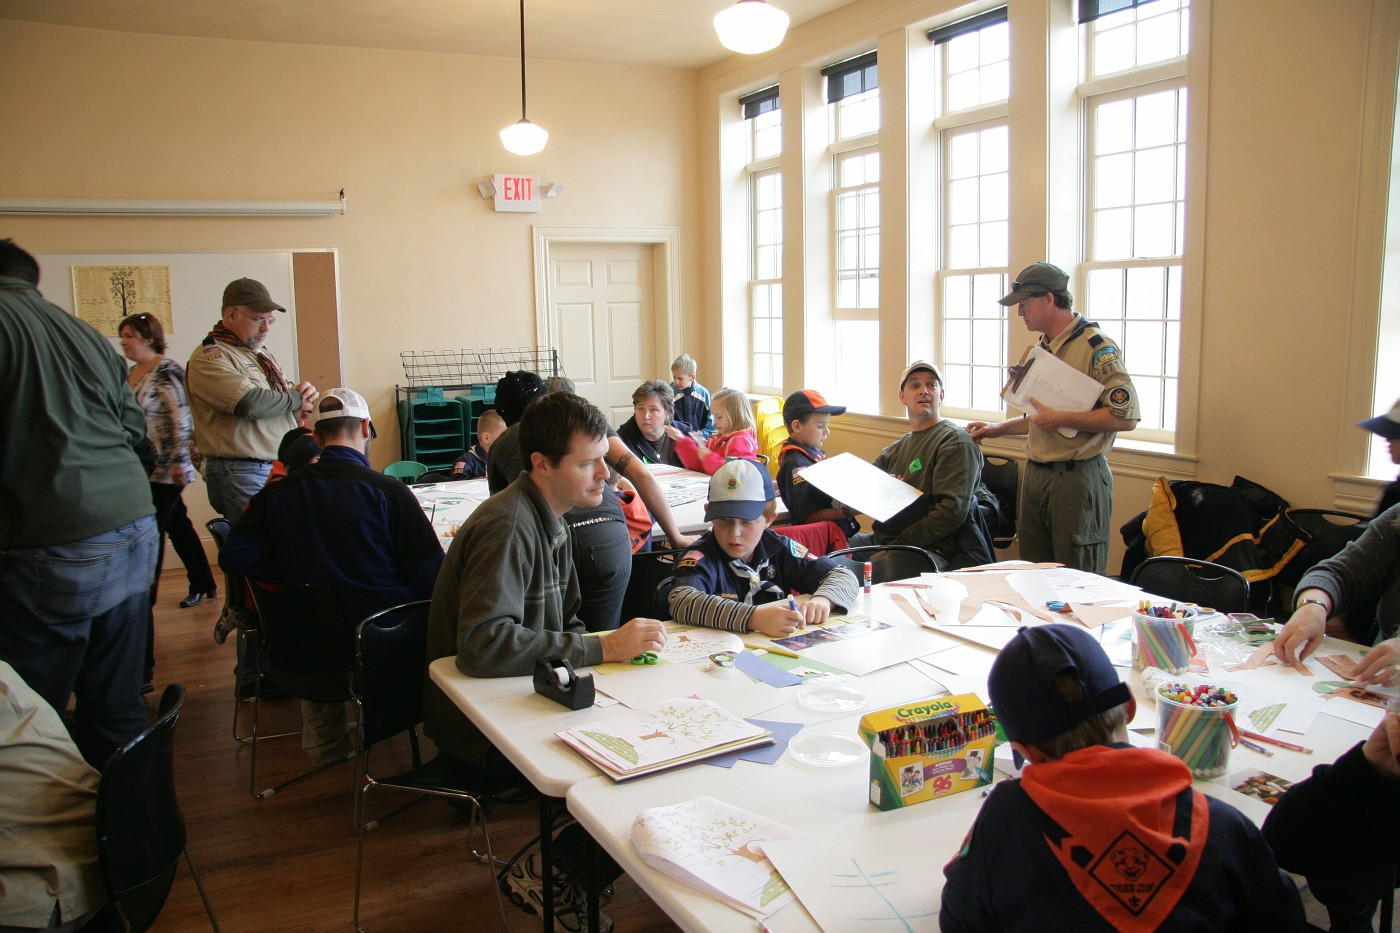 11-21-10 Cub Scouts to HQ019